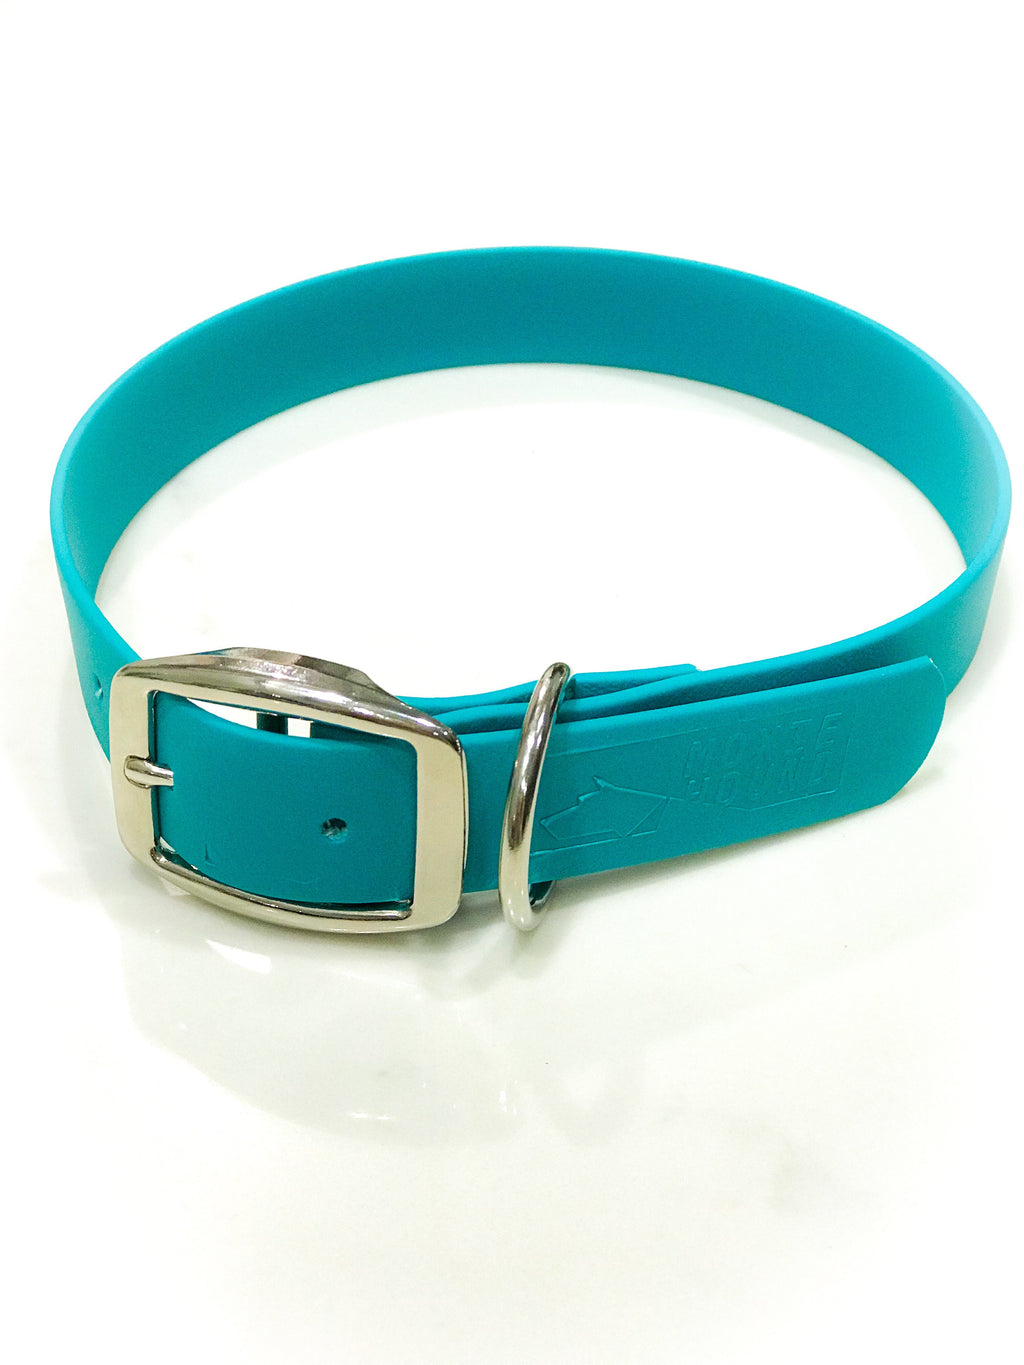 Intertidal Collection™ Teal 1 inch Collar - The Moxie Collection